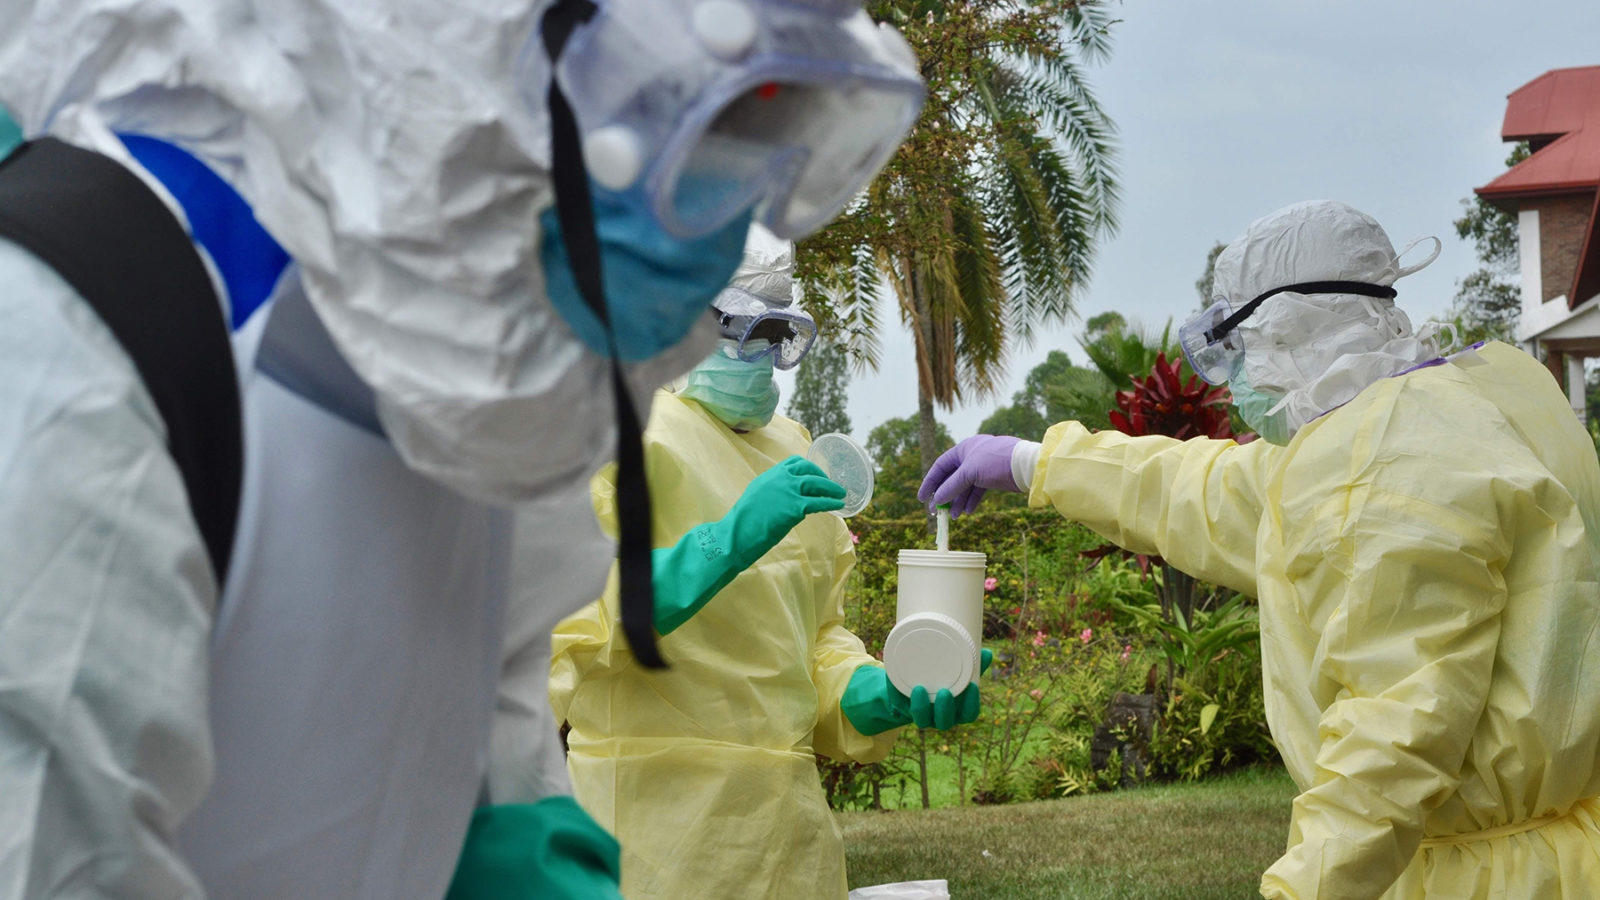 A rapid response team in the Democratic Republic of Congo conducts exercises to prepare for exposure to Ebola. Cases of the disease, two of which were fatal, were recently discovered in Uganda, and health officials are on high alert to prevent further spread of the disease. More than 1,400 people have died as a result of the outbreak since last year. (Photo by  Tania Seburyamo for the World Health Organization)